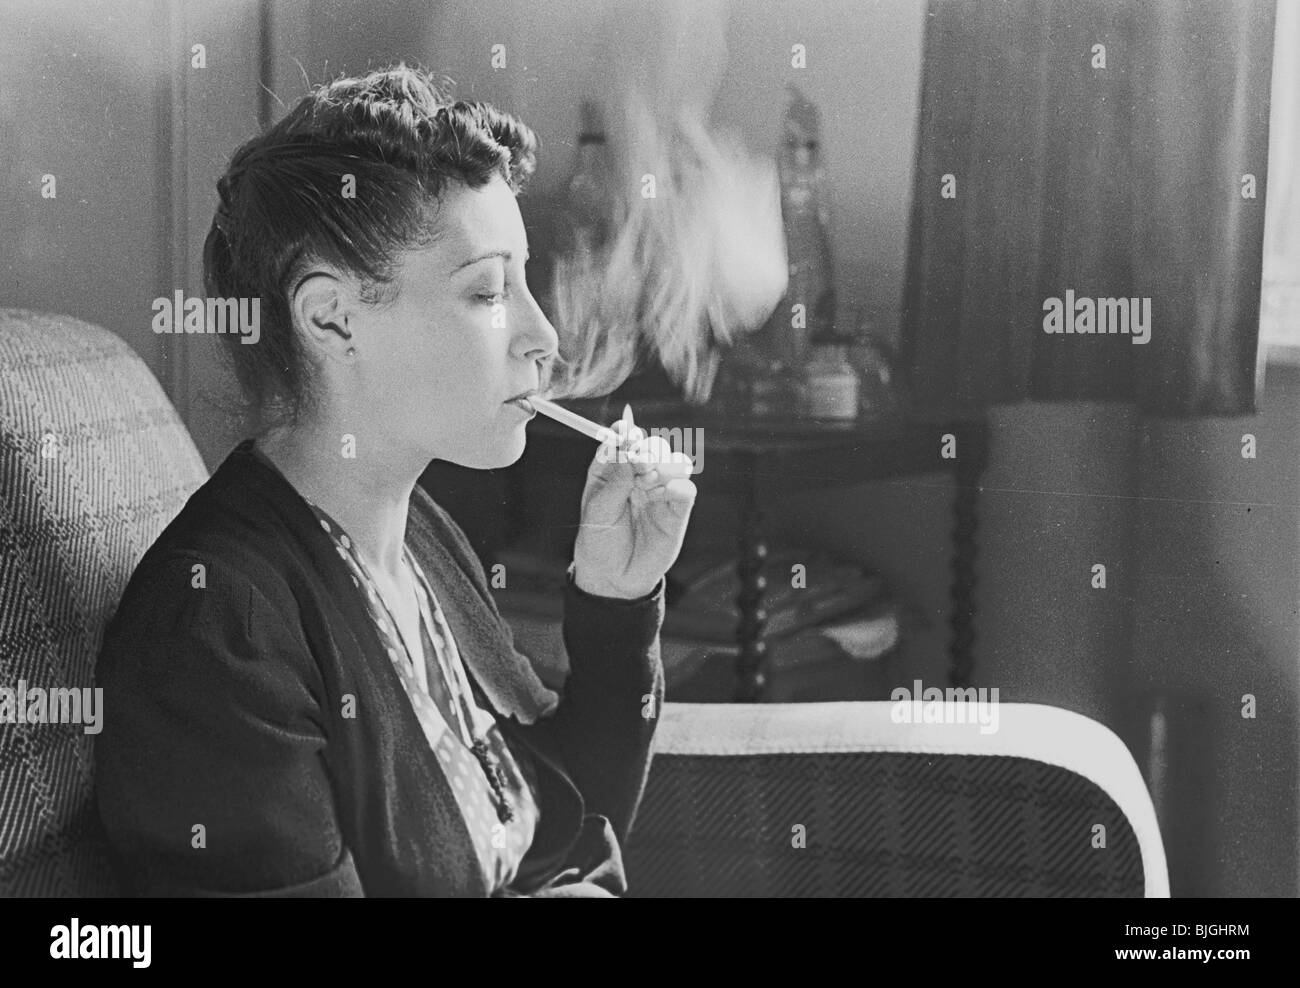 http://c8.alamy.com/comp/BJGHRM/photograph-of-a-young-lady-sitting-in-a-chair-learning-how-to-smoke-BJGHRM.jpg